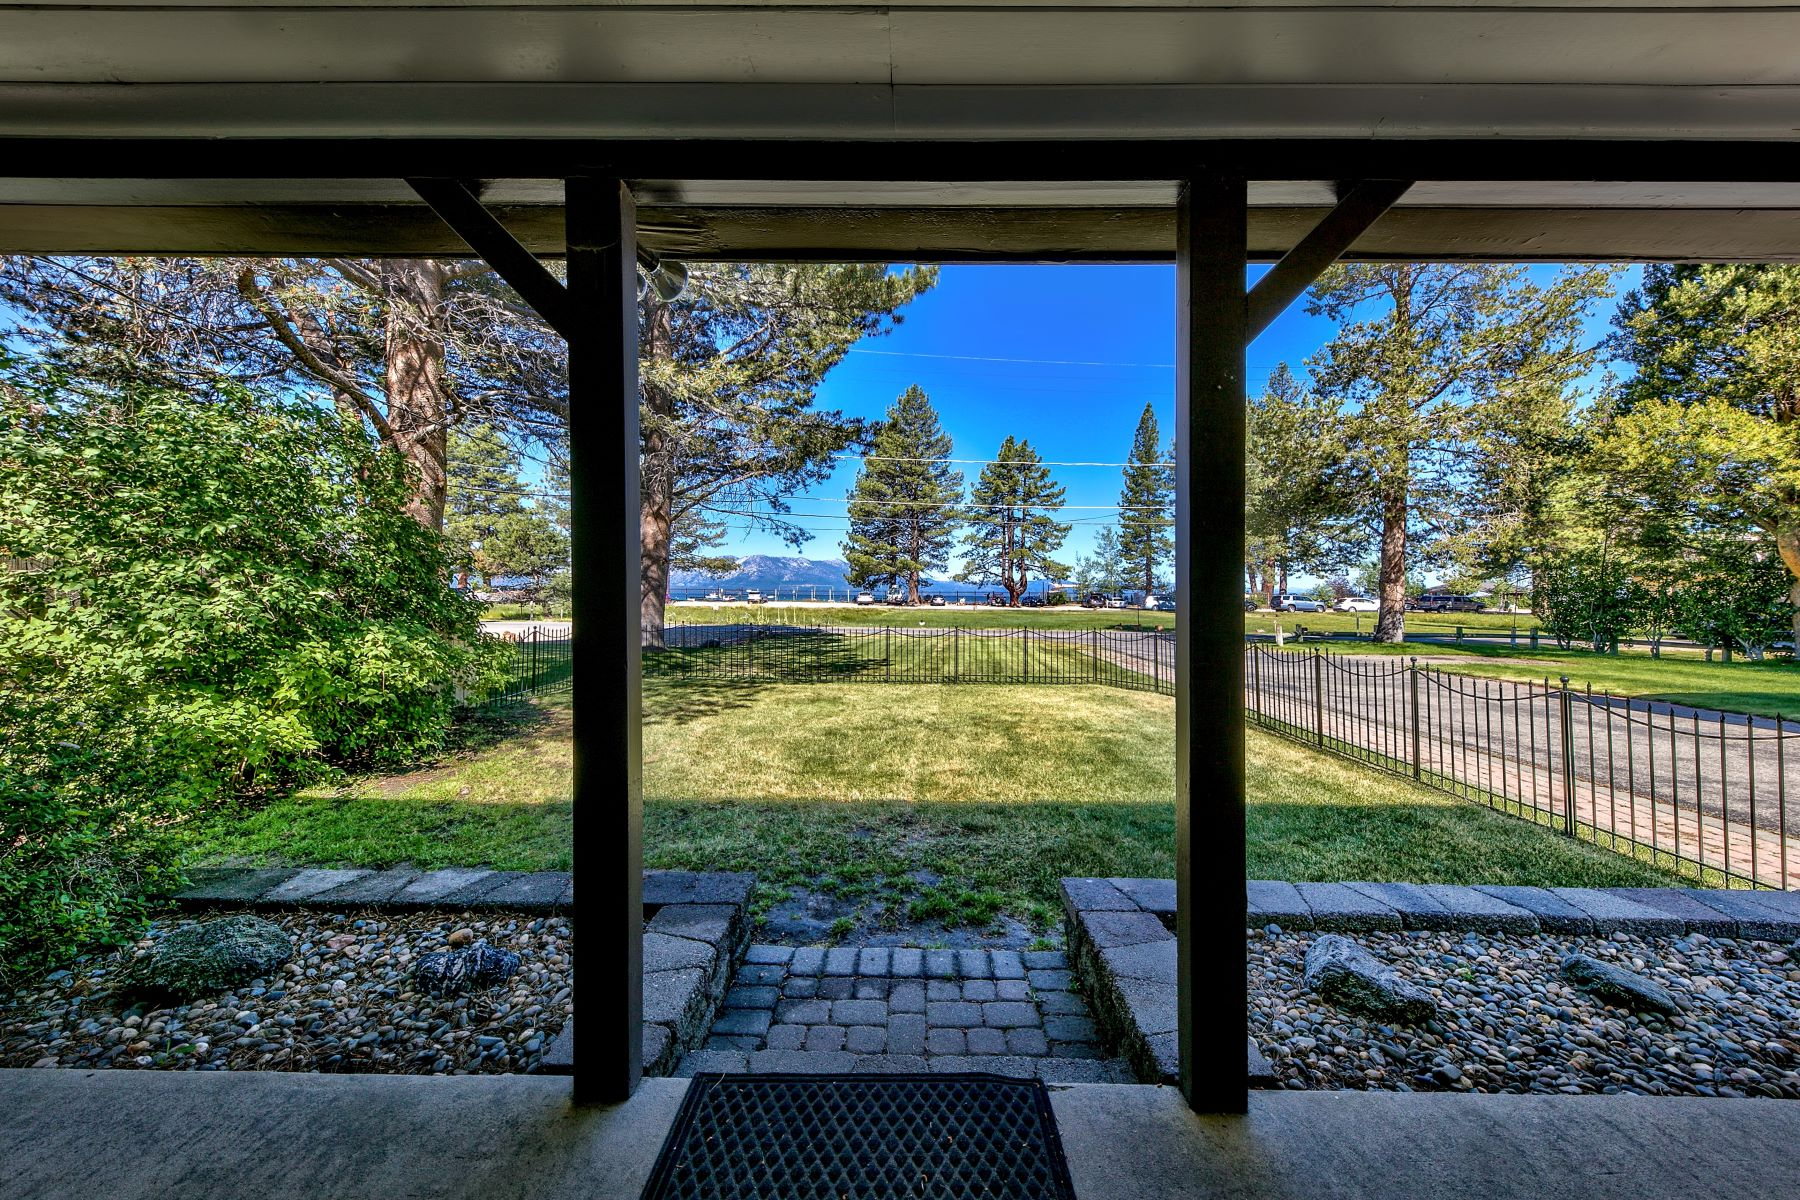 Additional photo for property listing at Lakefront Property 4068/4067 Sunrise Lane South Lake Tahoe, California 96150 United States